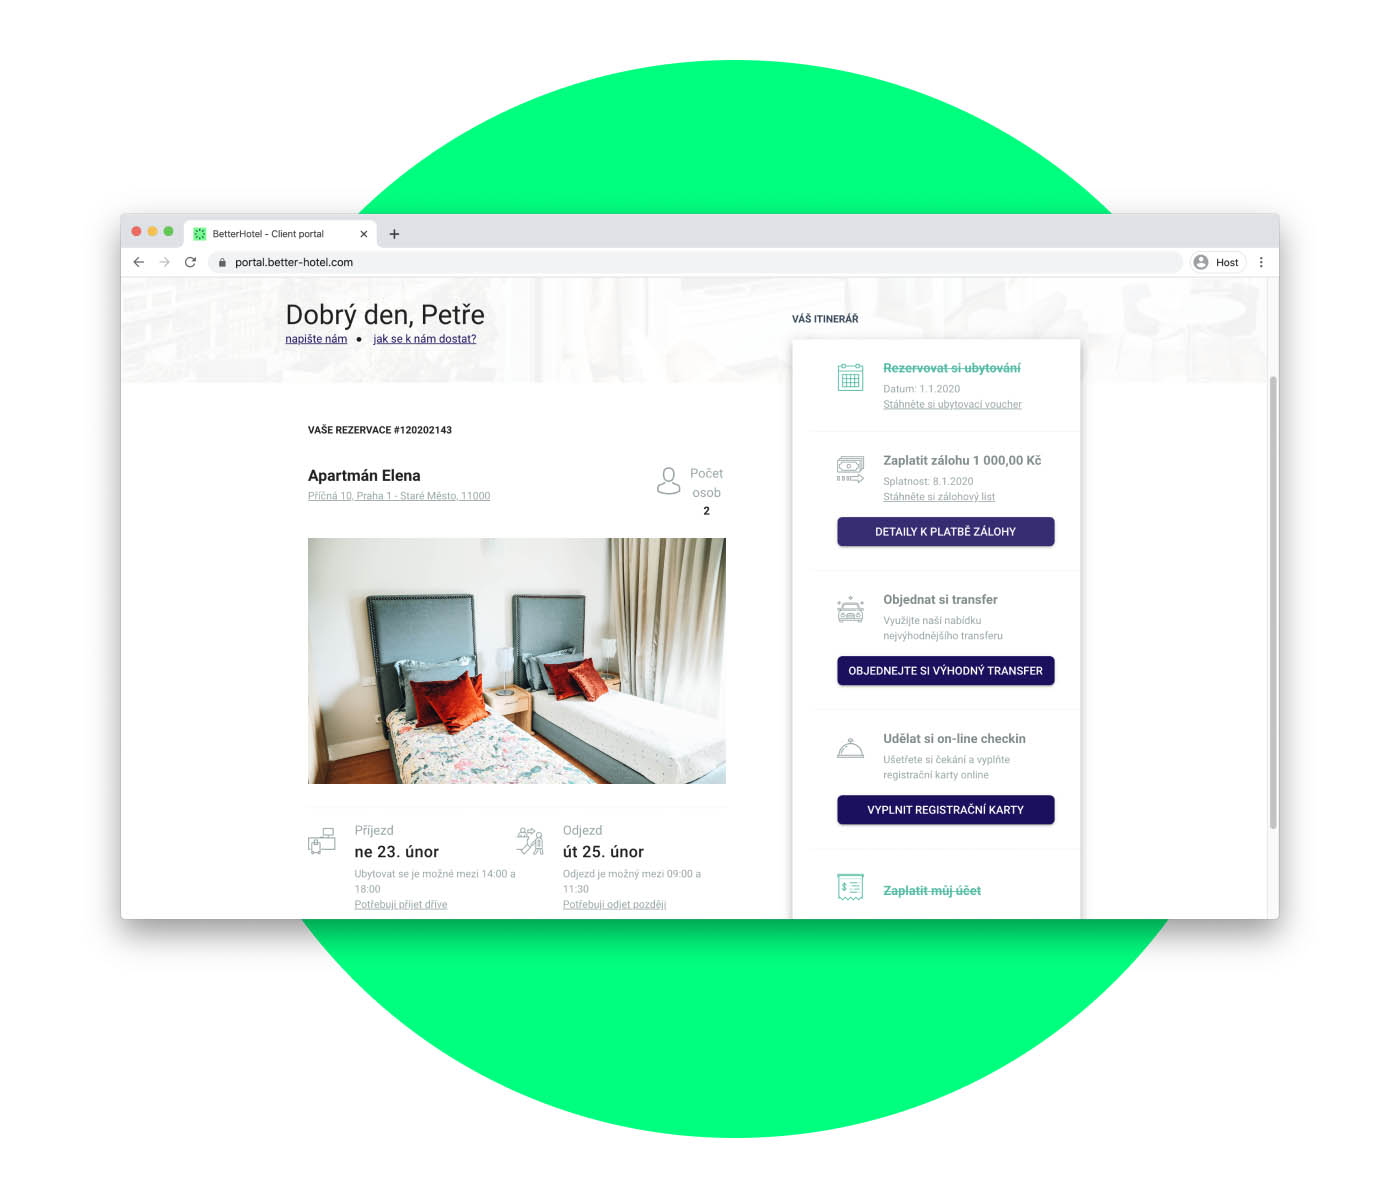 Guest experience portal with online check-in